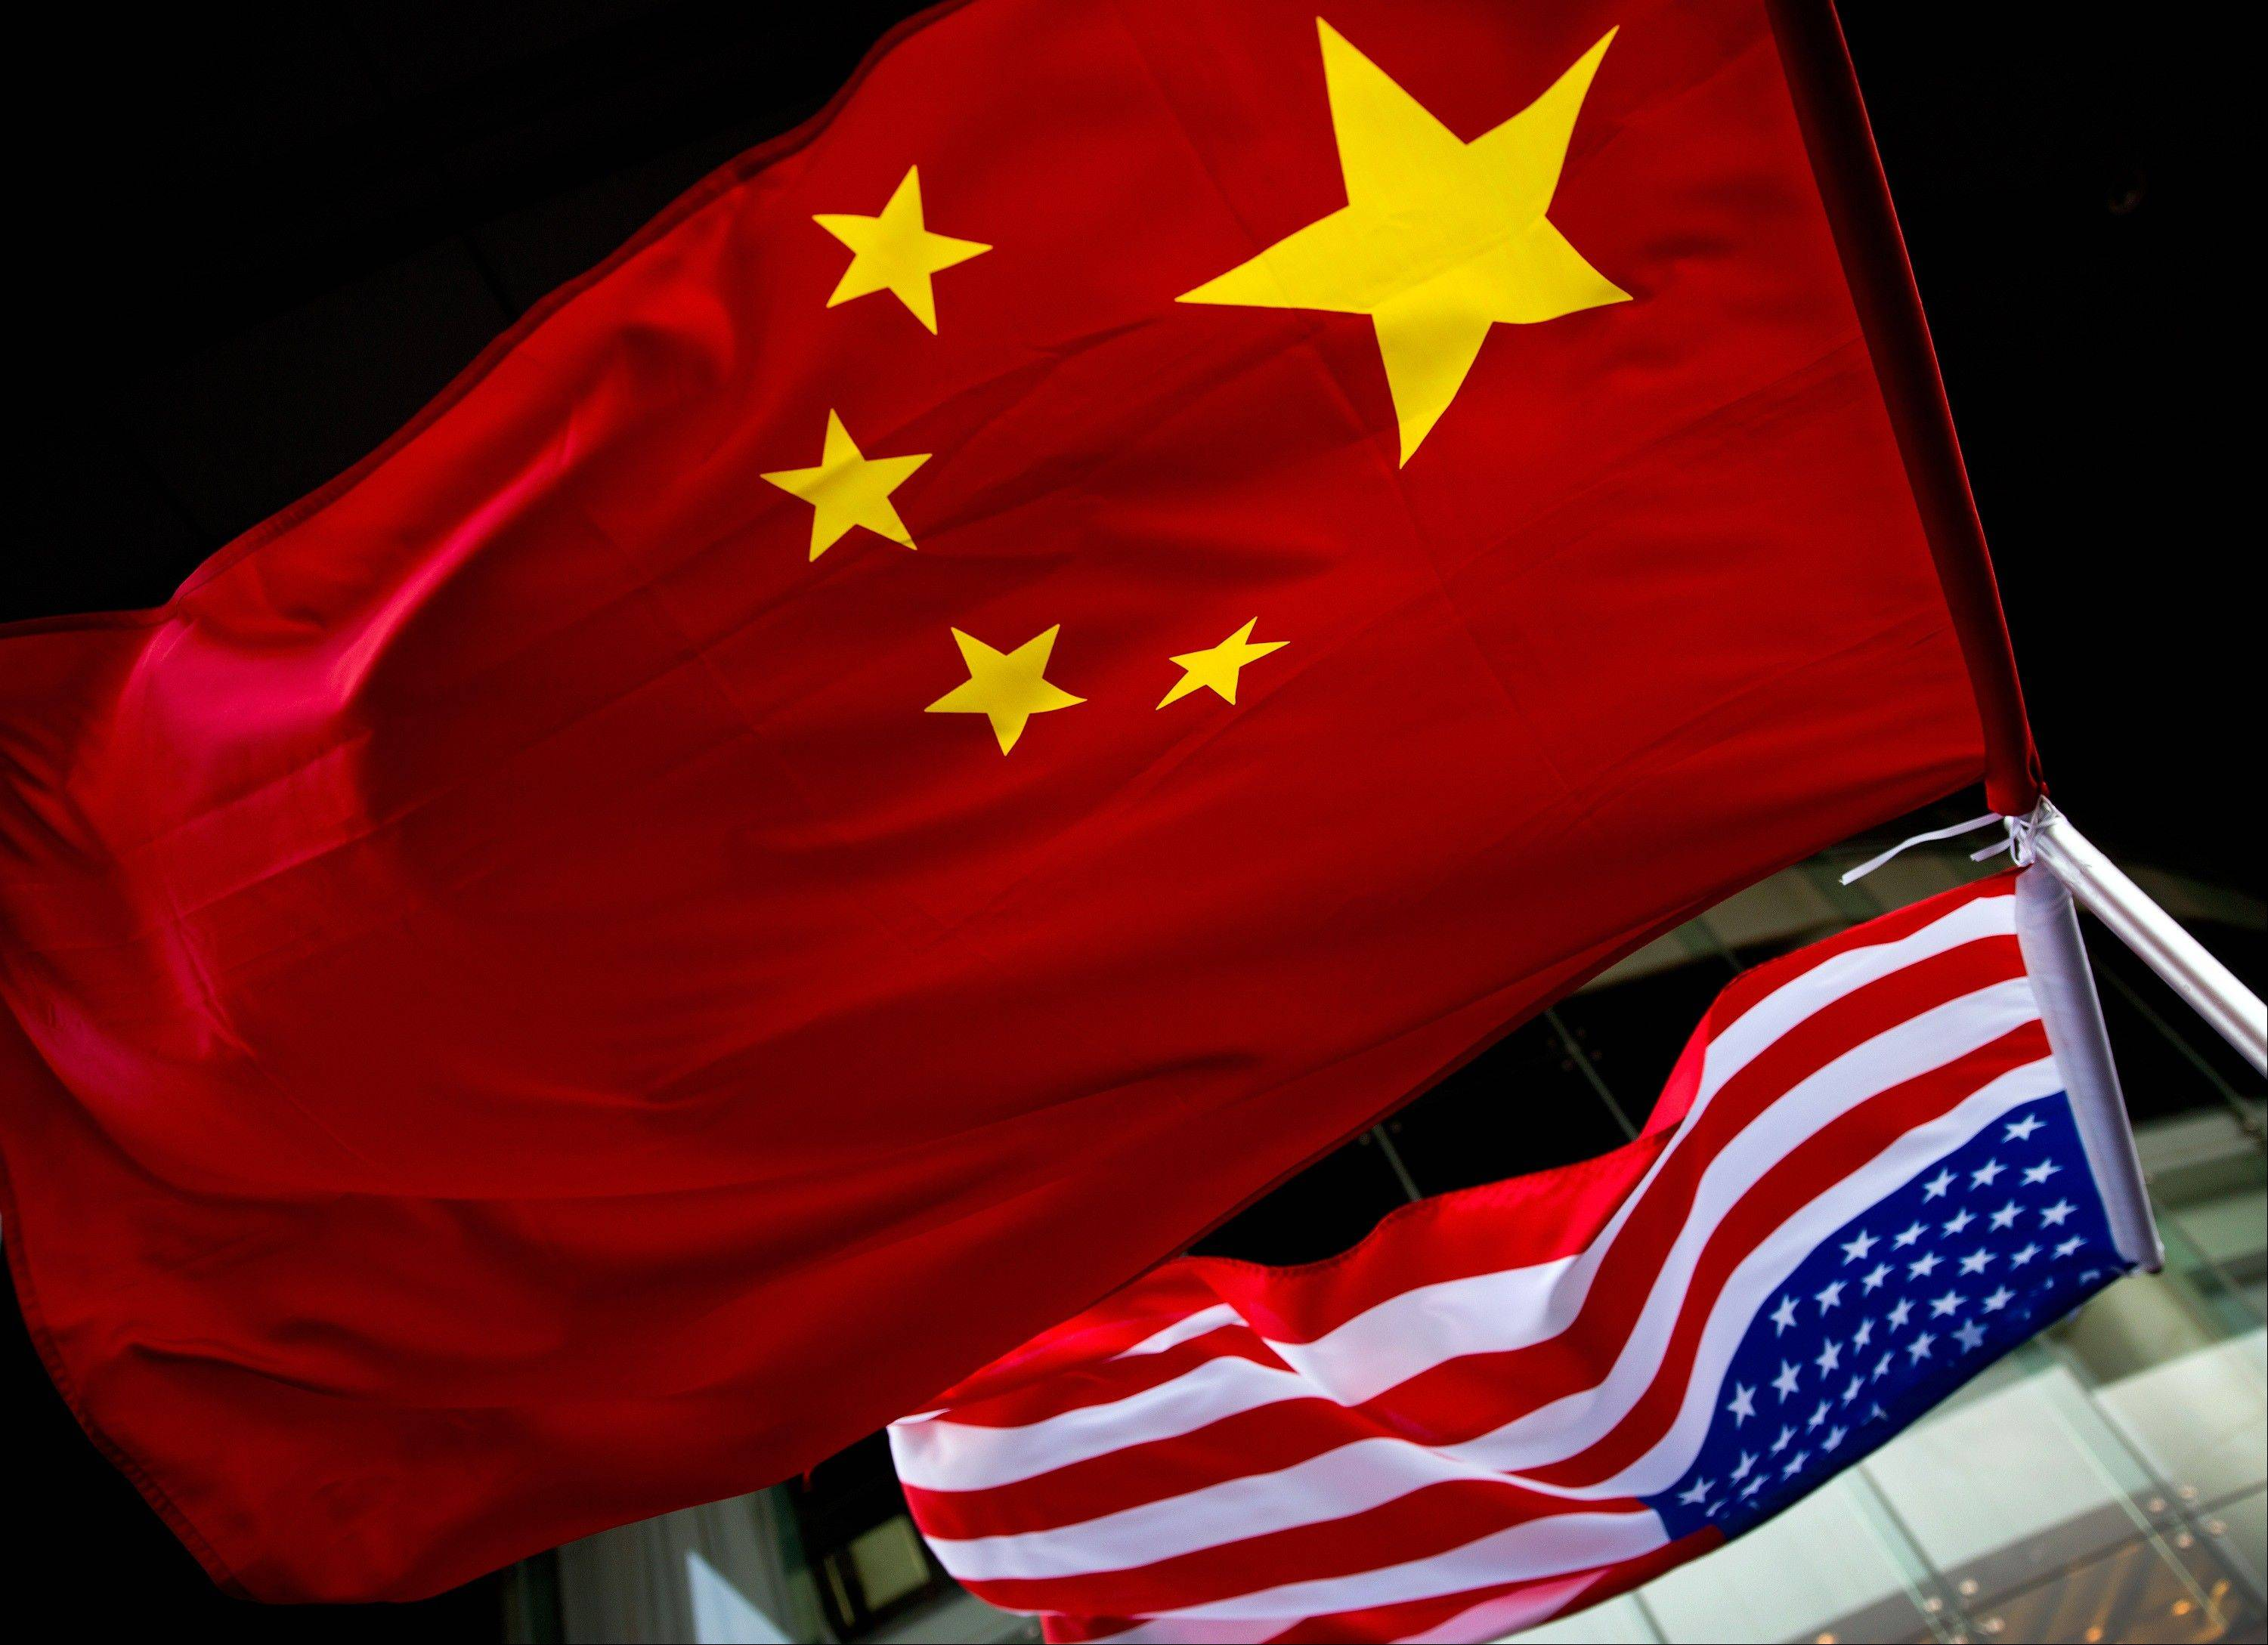 China says it is willing to cooperate with the United States in cybersecurity after the U.S. called on it to take �serious steps� to stop cyberattacks.